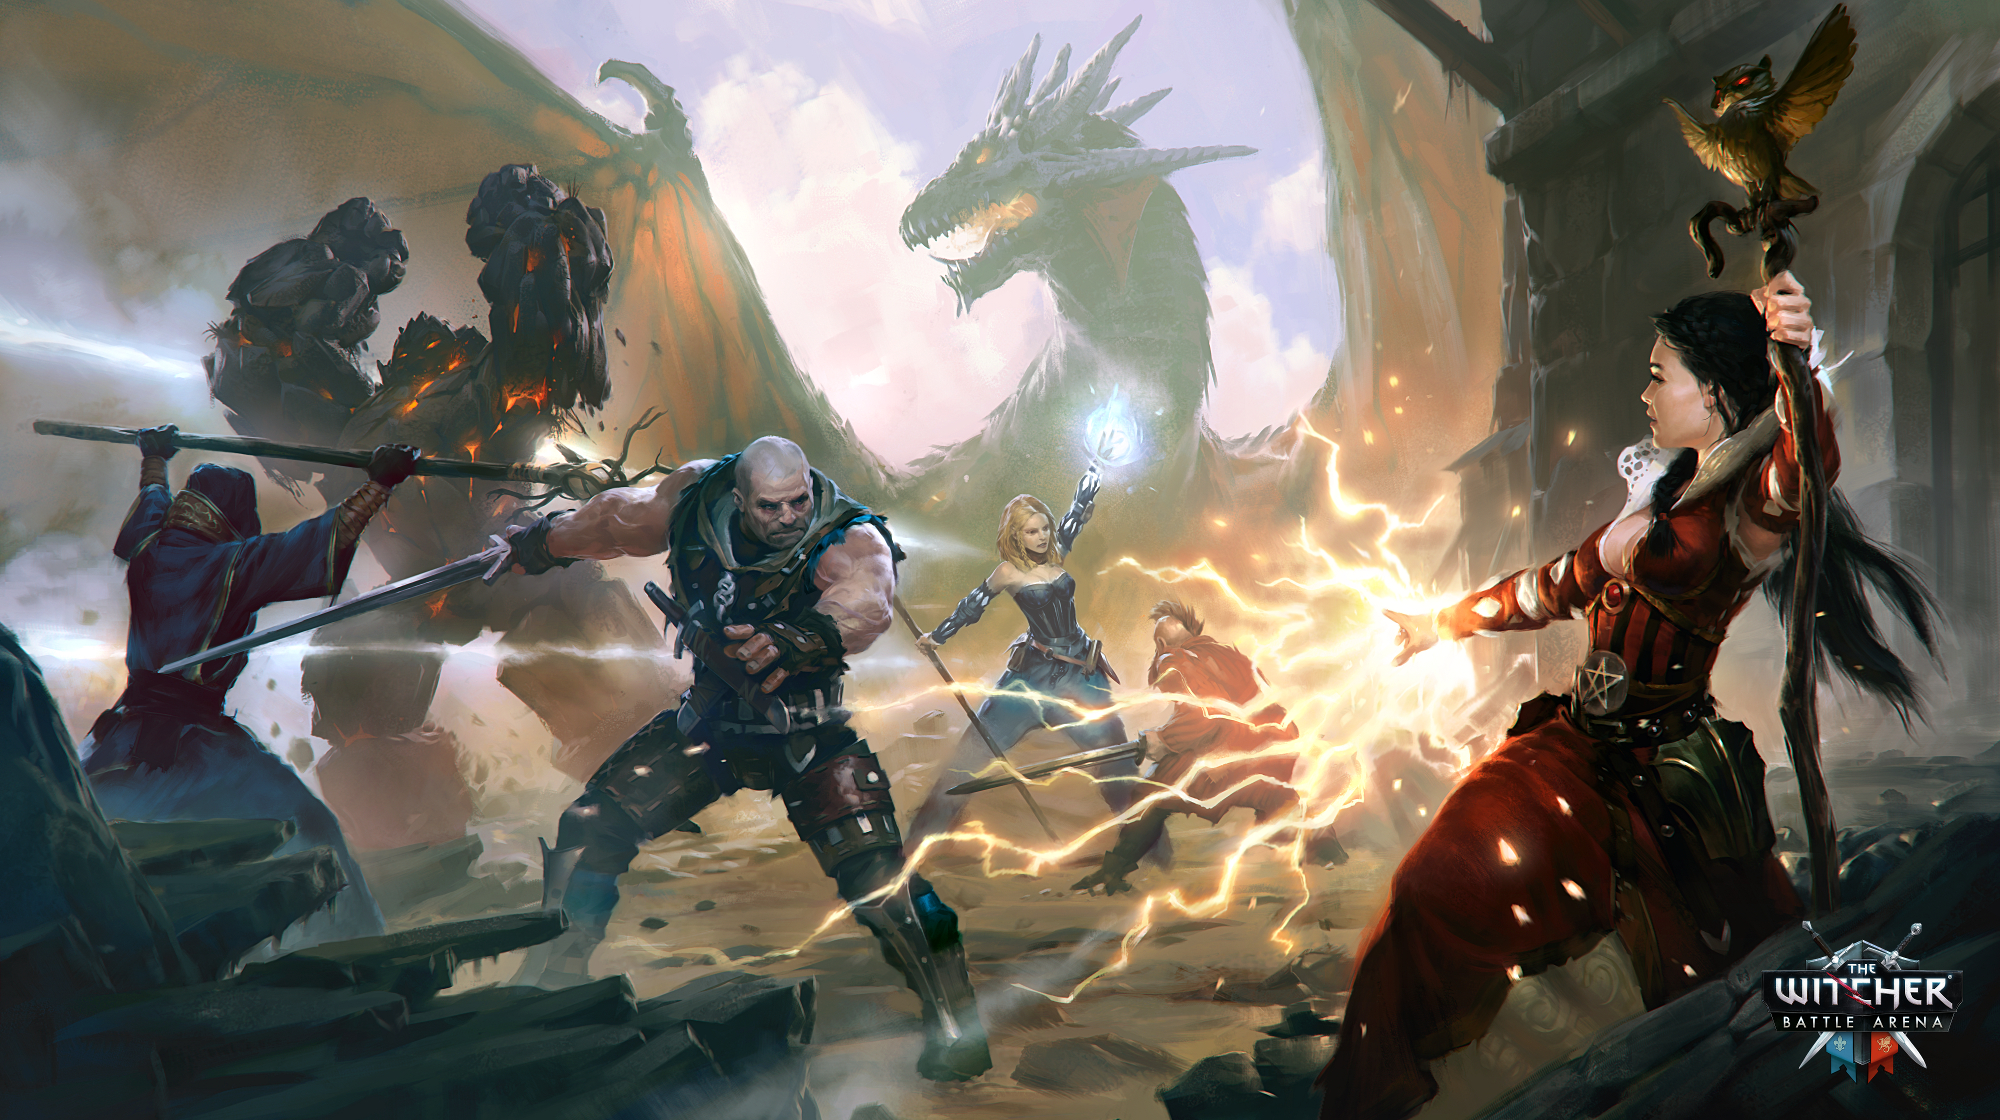 The Witcher Battle Arena is a free-to-play MOBA for iOS, Android